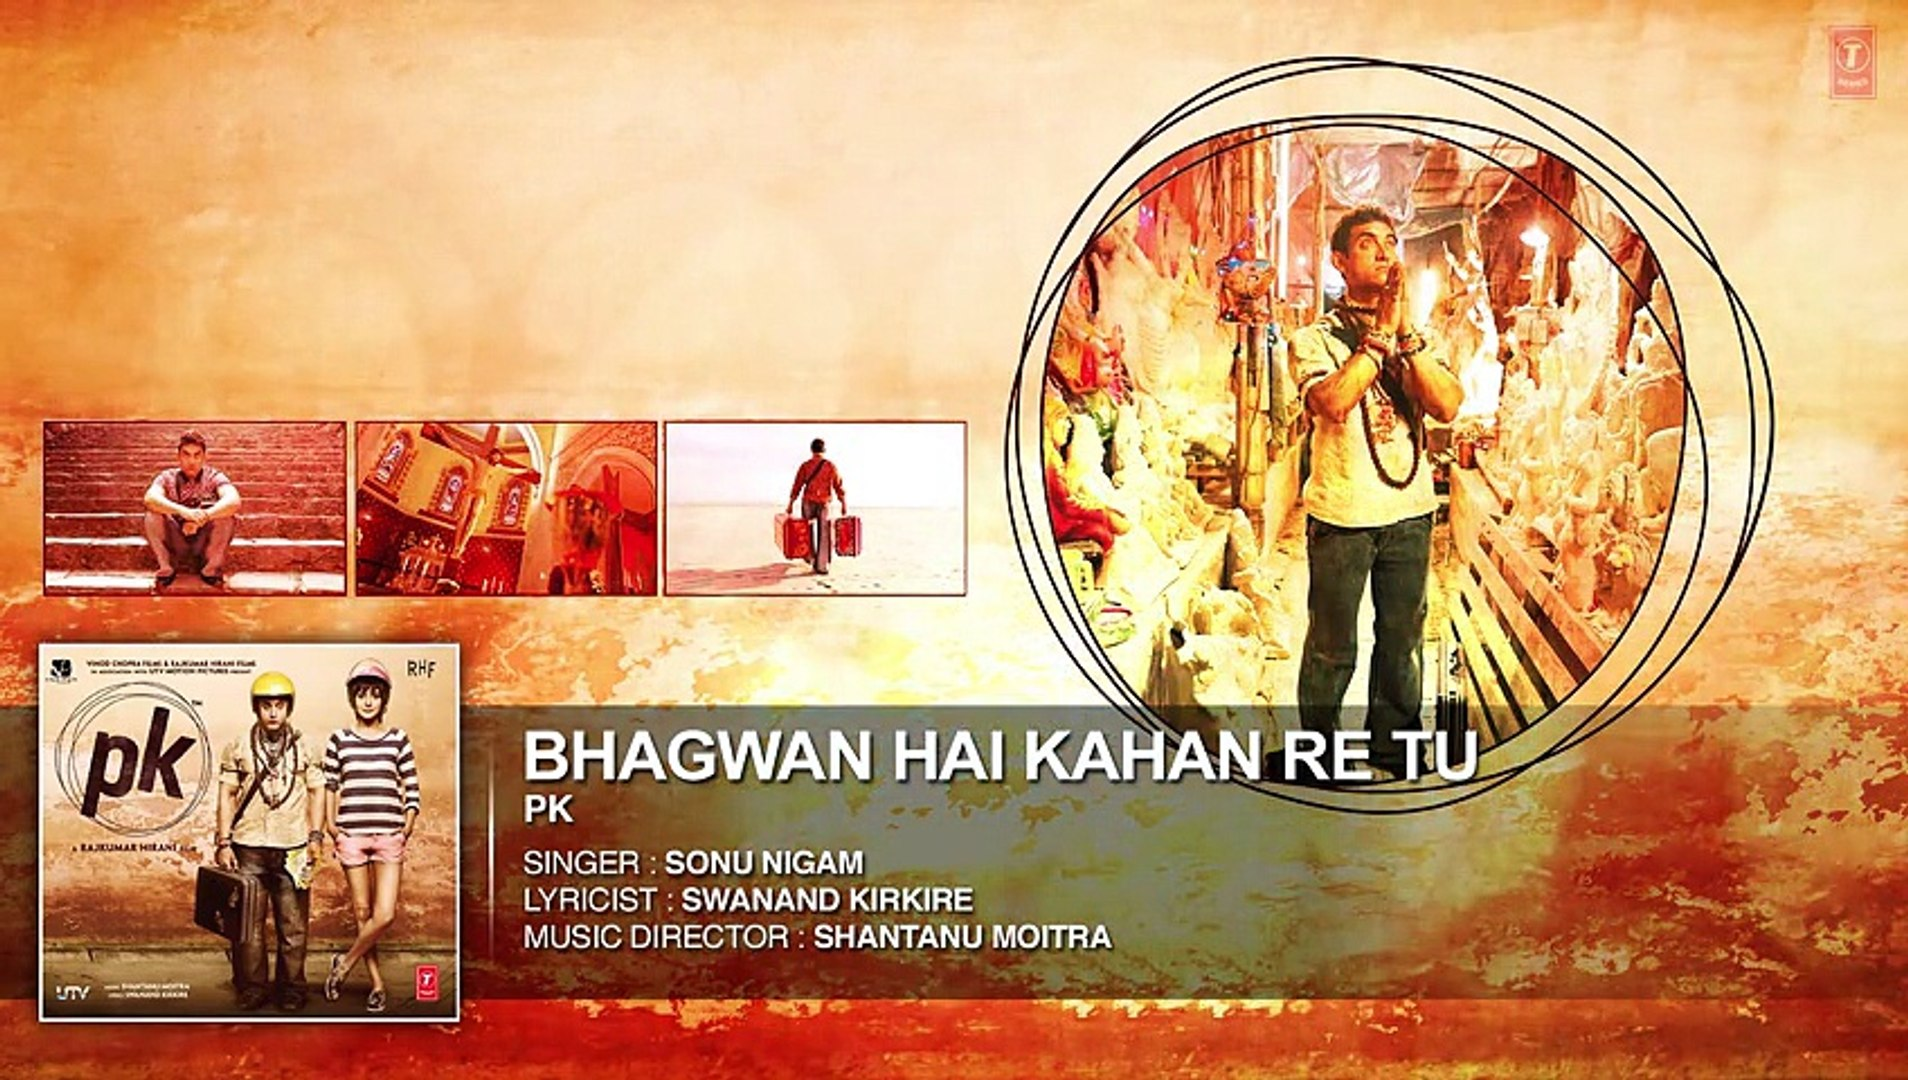 Bhagwan Hai Kahan Re Tu; FULL AUDIO Song - PK - Aamir Khan - Anushka Sharma